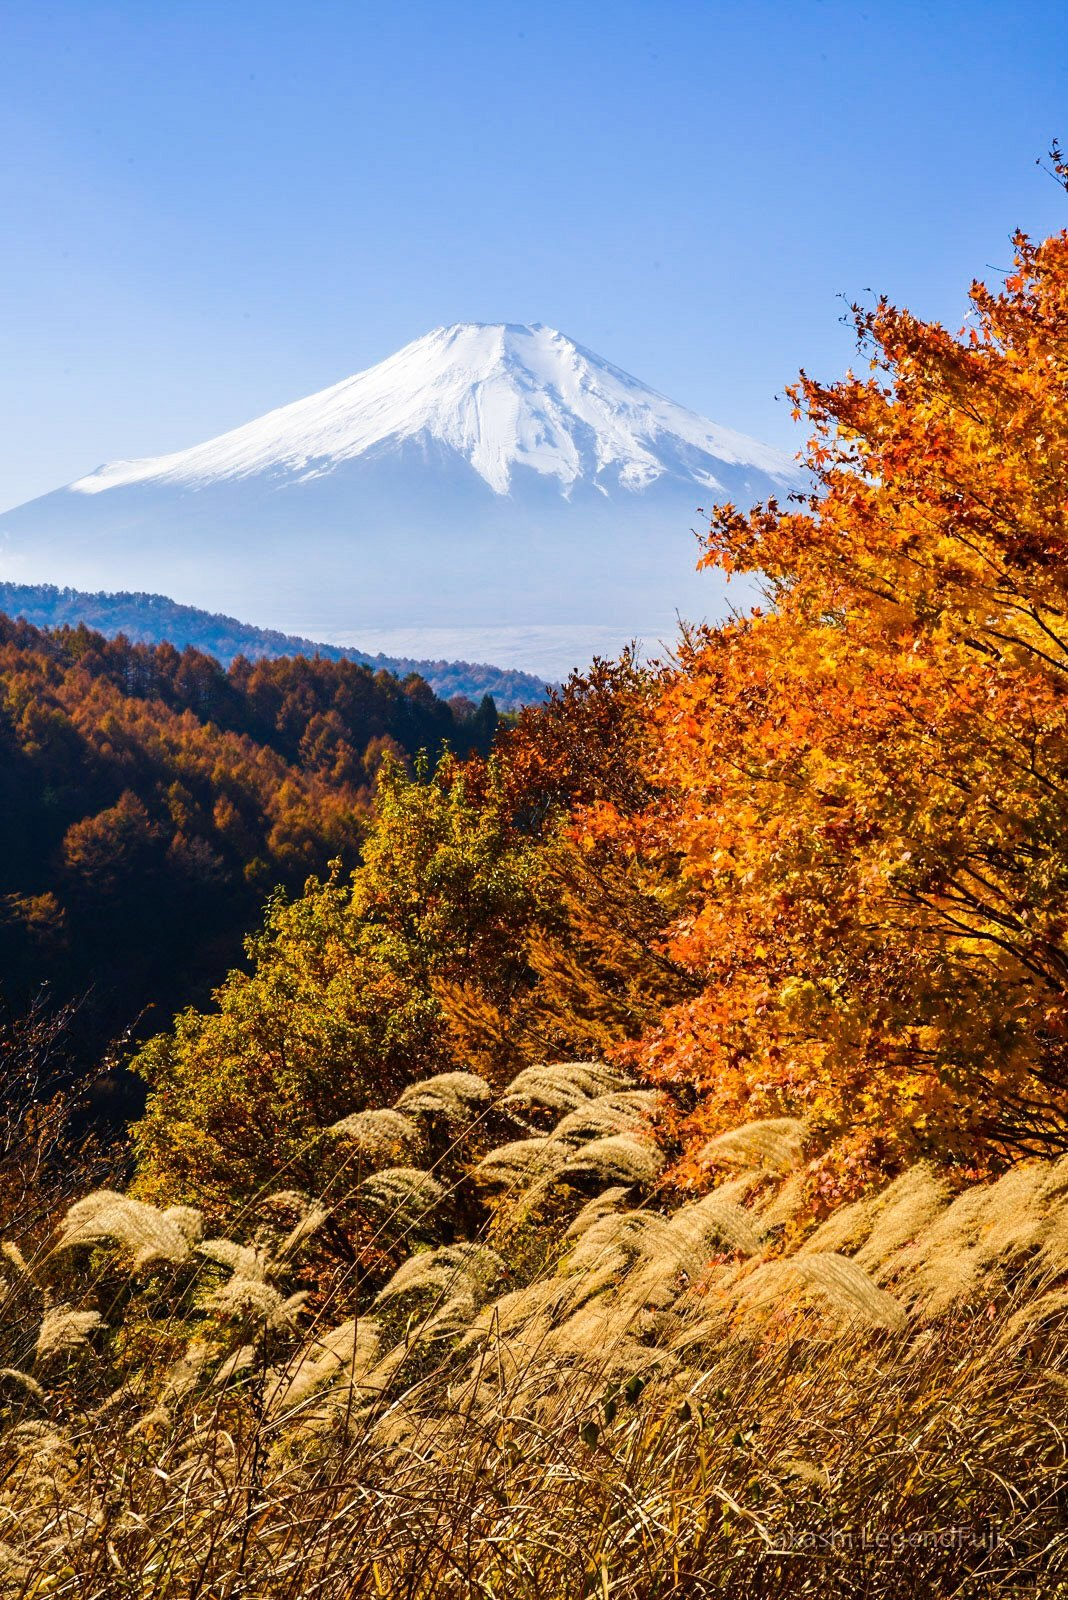 fuji,mountain,autumn,yellow,orange,blue,sky,japan, Takashi